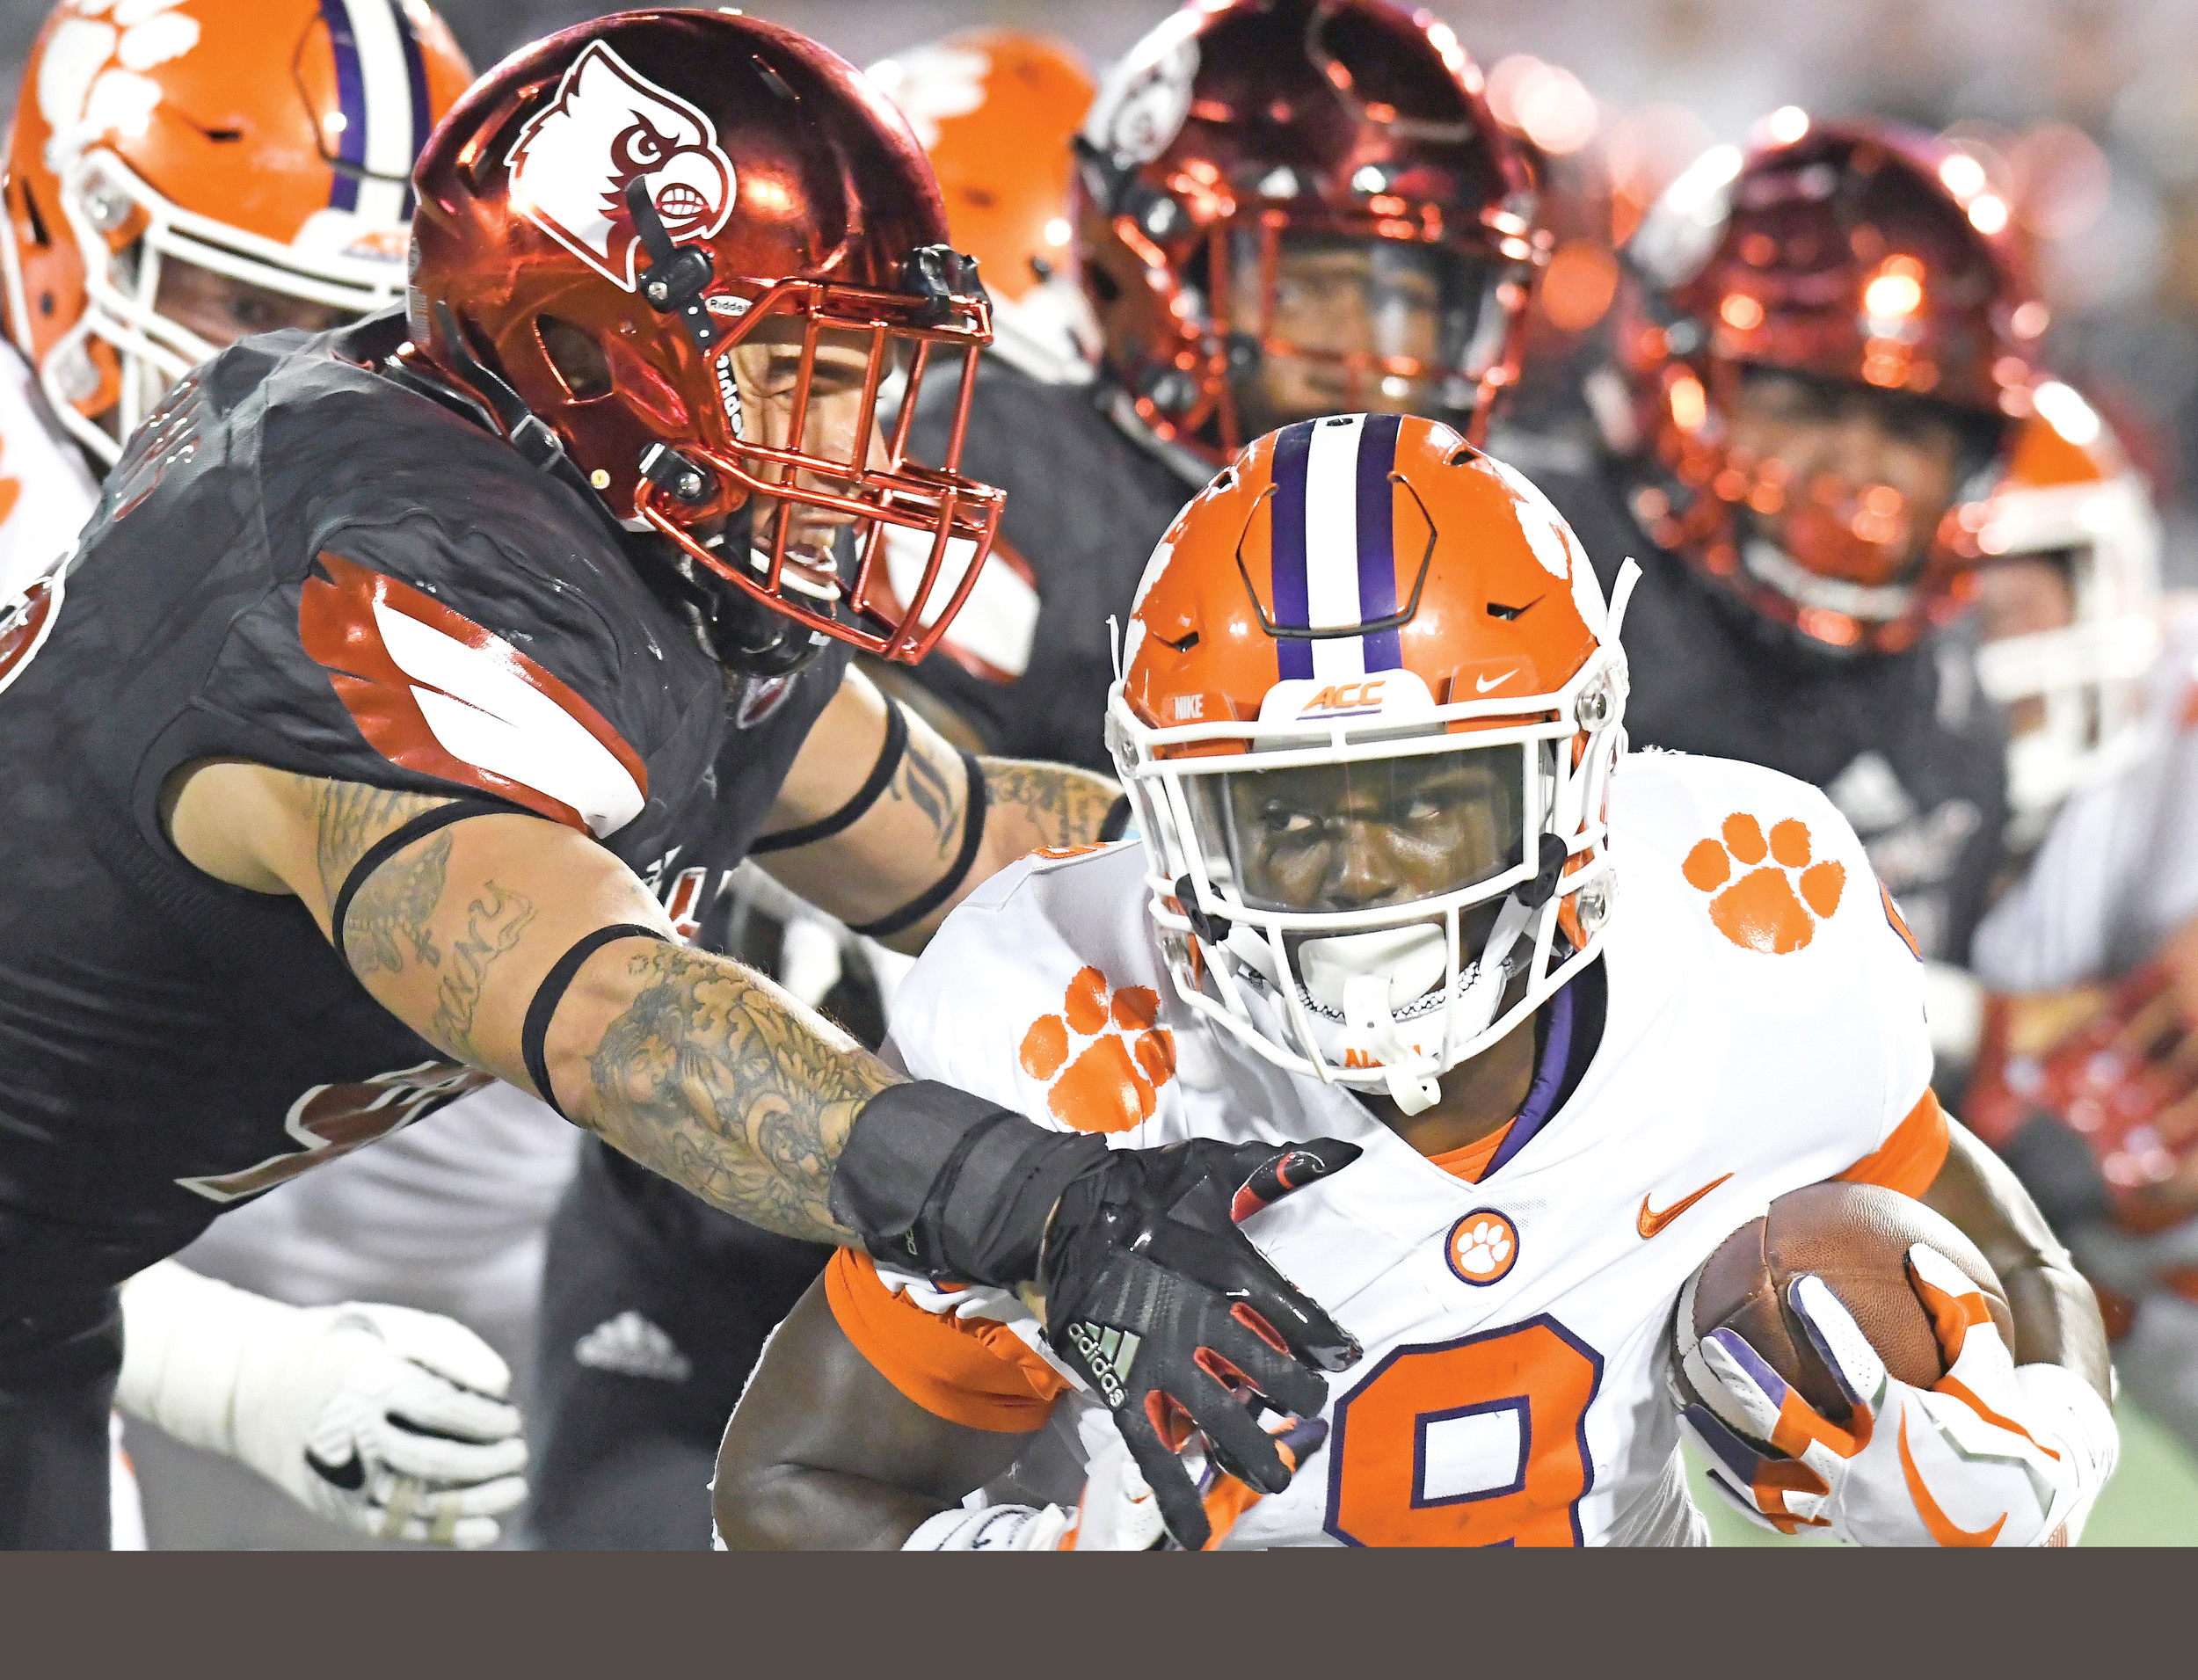 Clemson freshman Travis Etienne (9) has everything a tailback needs. He's got the speed as evidenced by his 81- and 50-yard TD runs the past two weeks. He also has power moves, as when he picked Clemson over his home-state school, LSU.